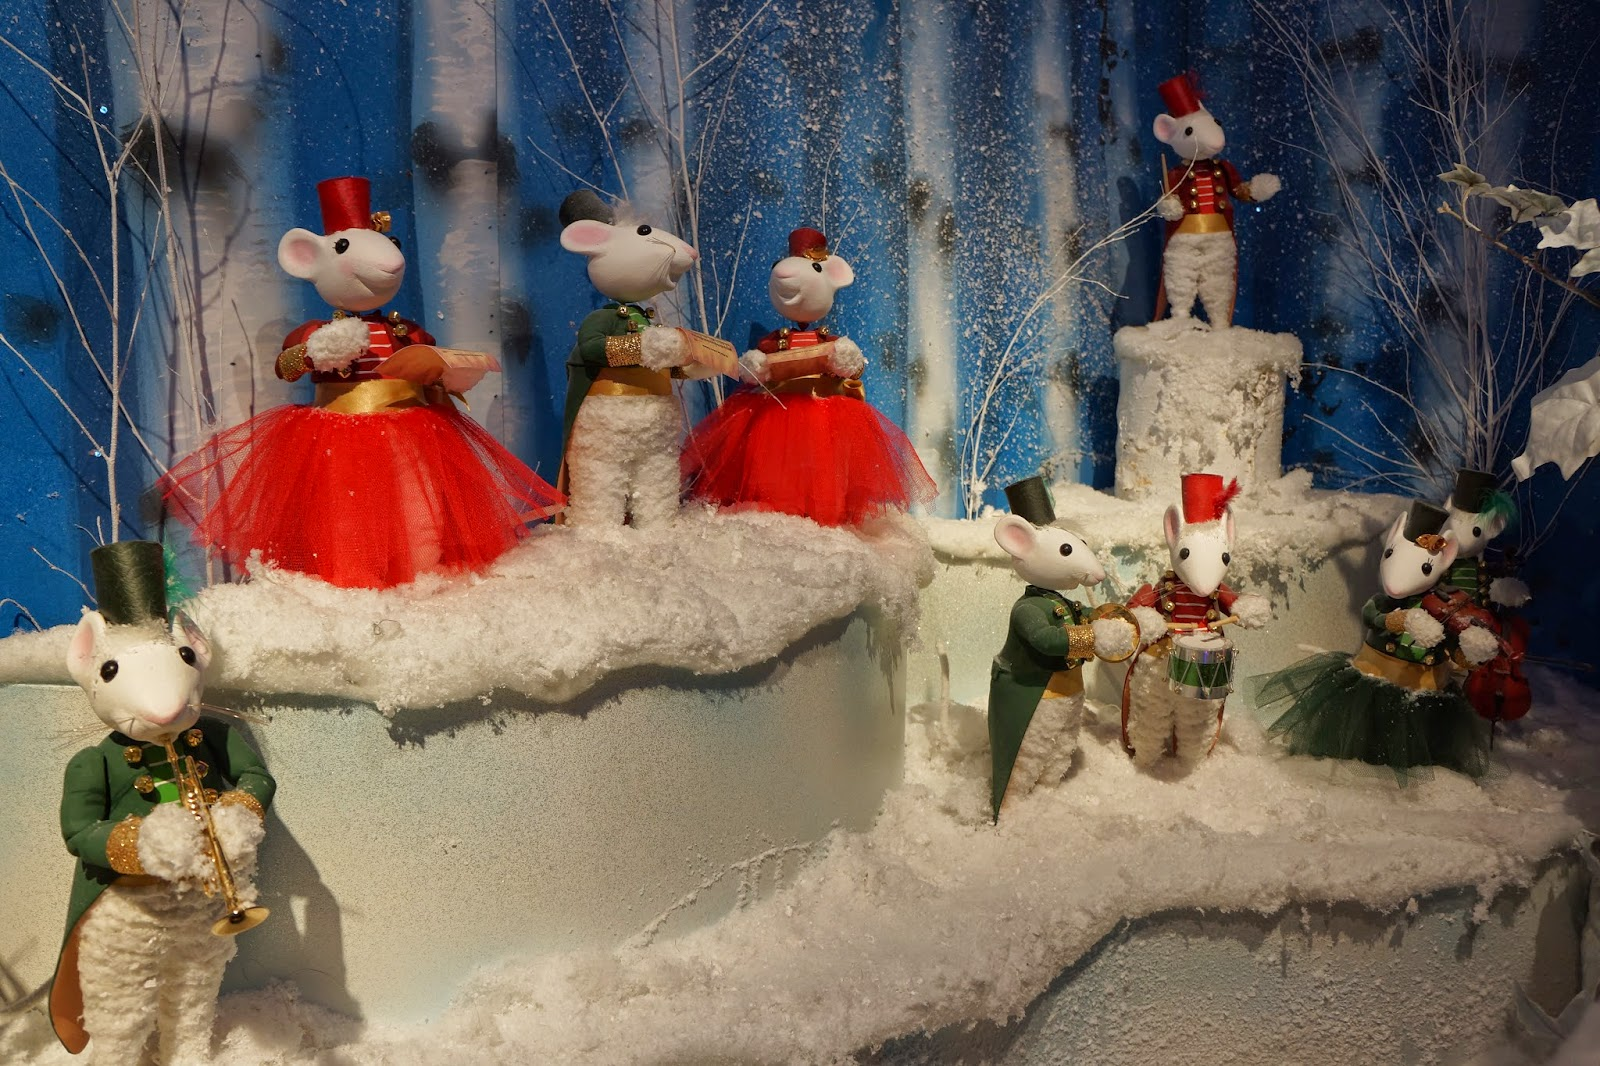 harrods christmas santa's grotto 2014 mouse mice